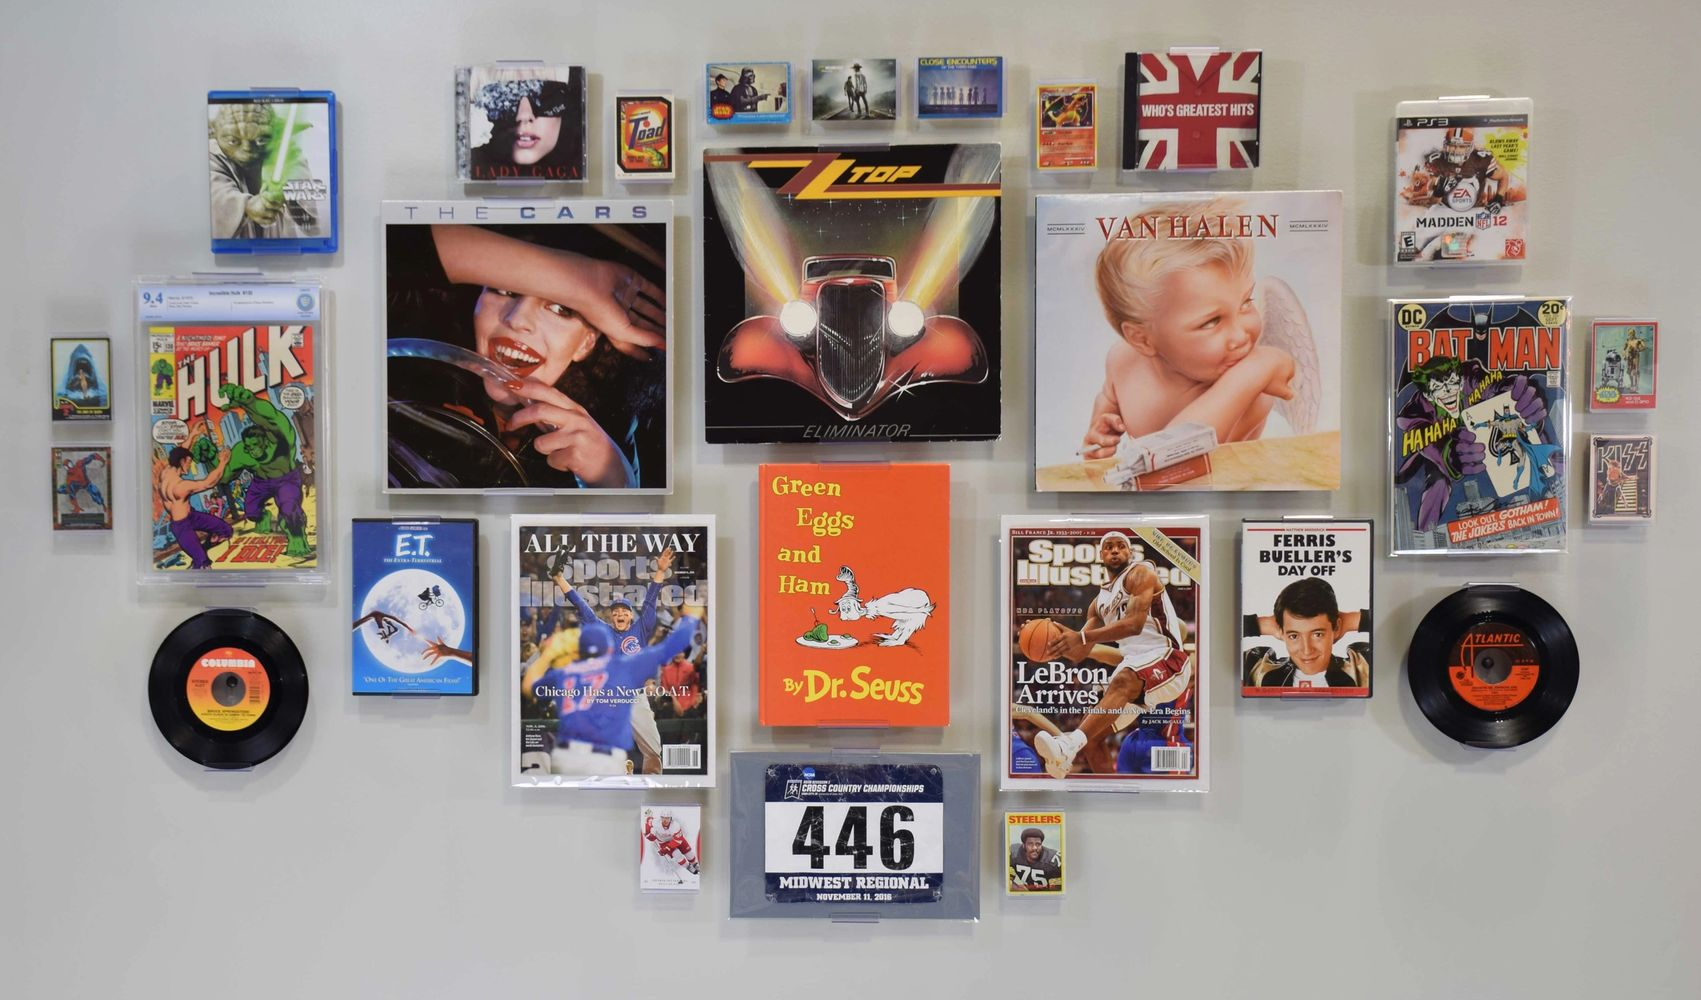 comic frame, record album frame, cd frame, dvd frame, video game display, trading card frame